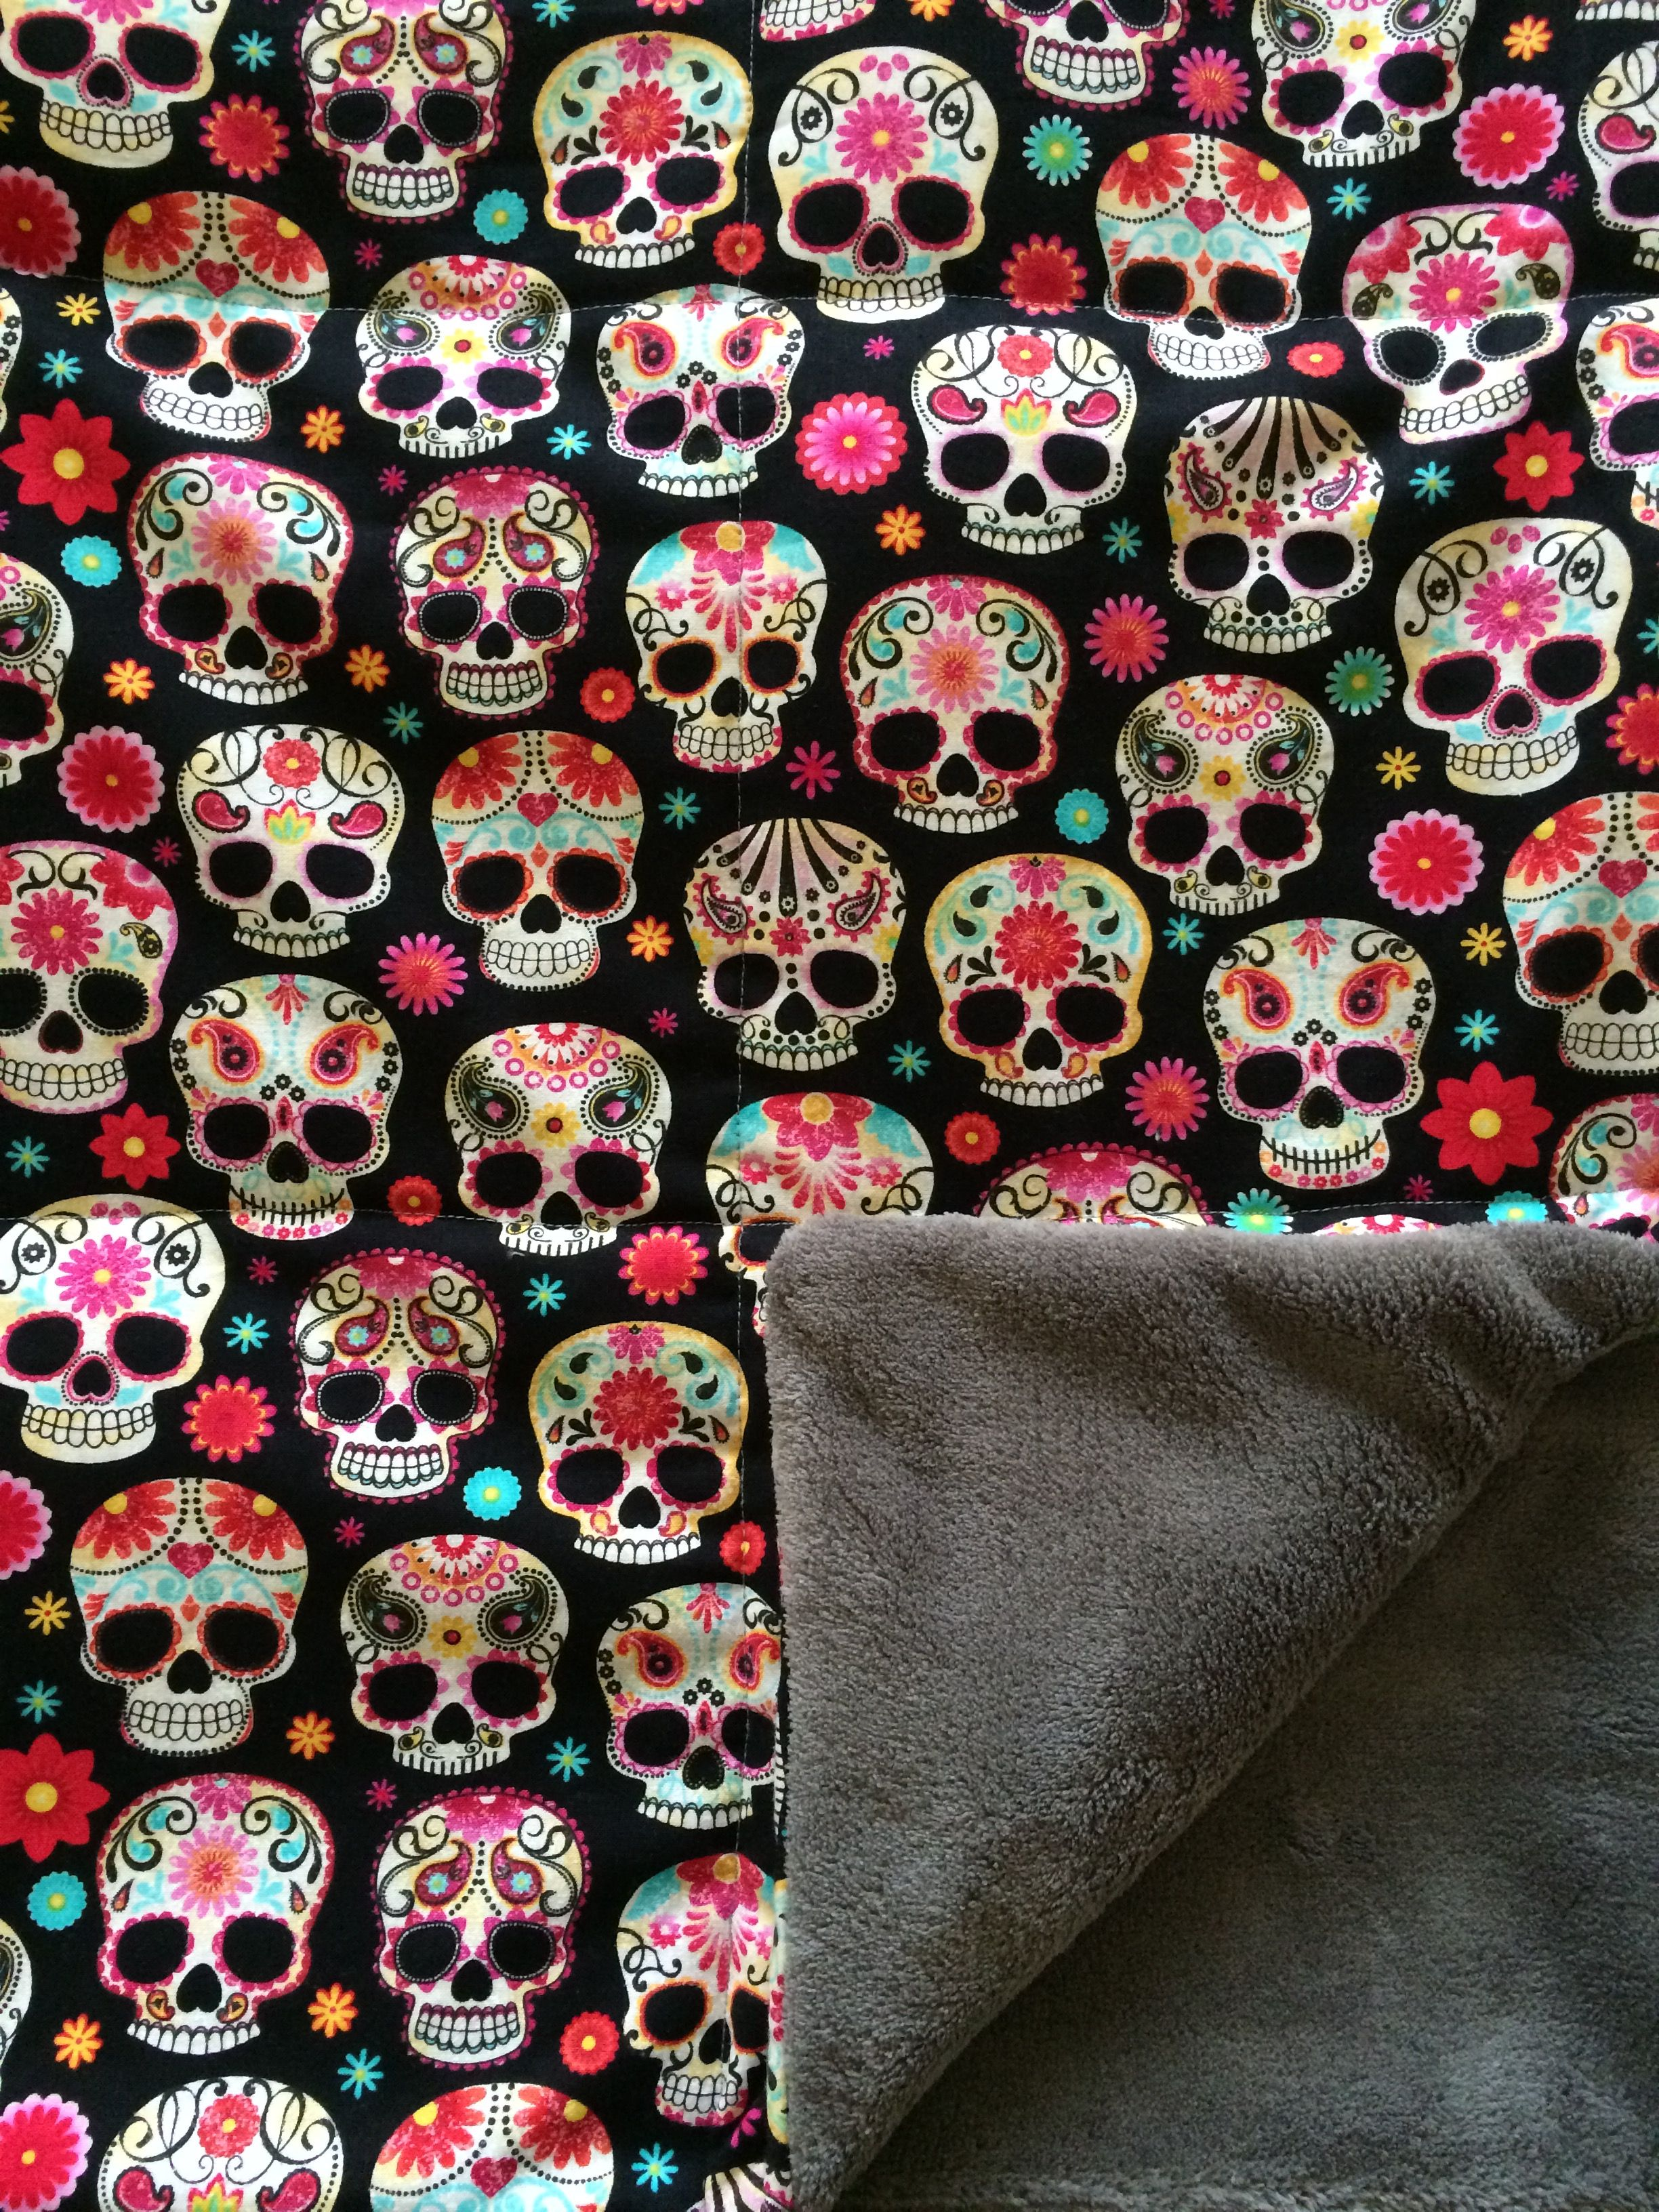 Custom sugar skull and gray minky weighted blanket. All of